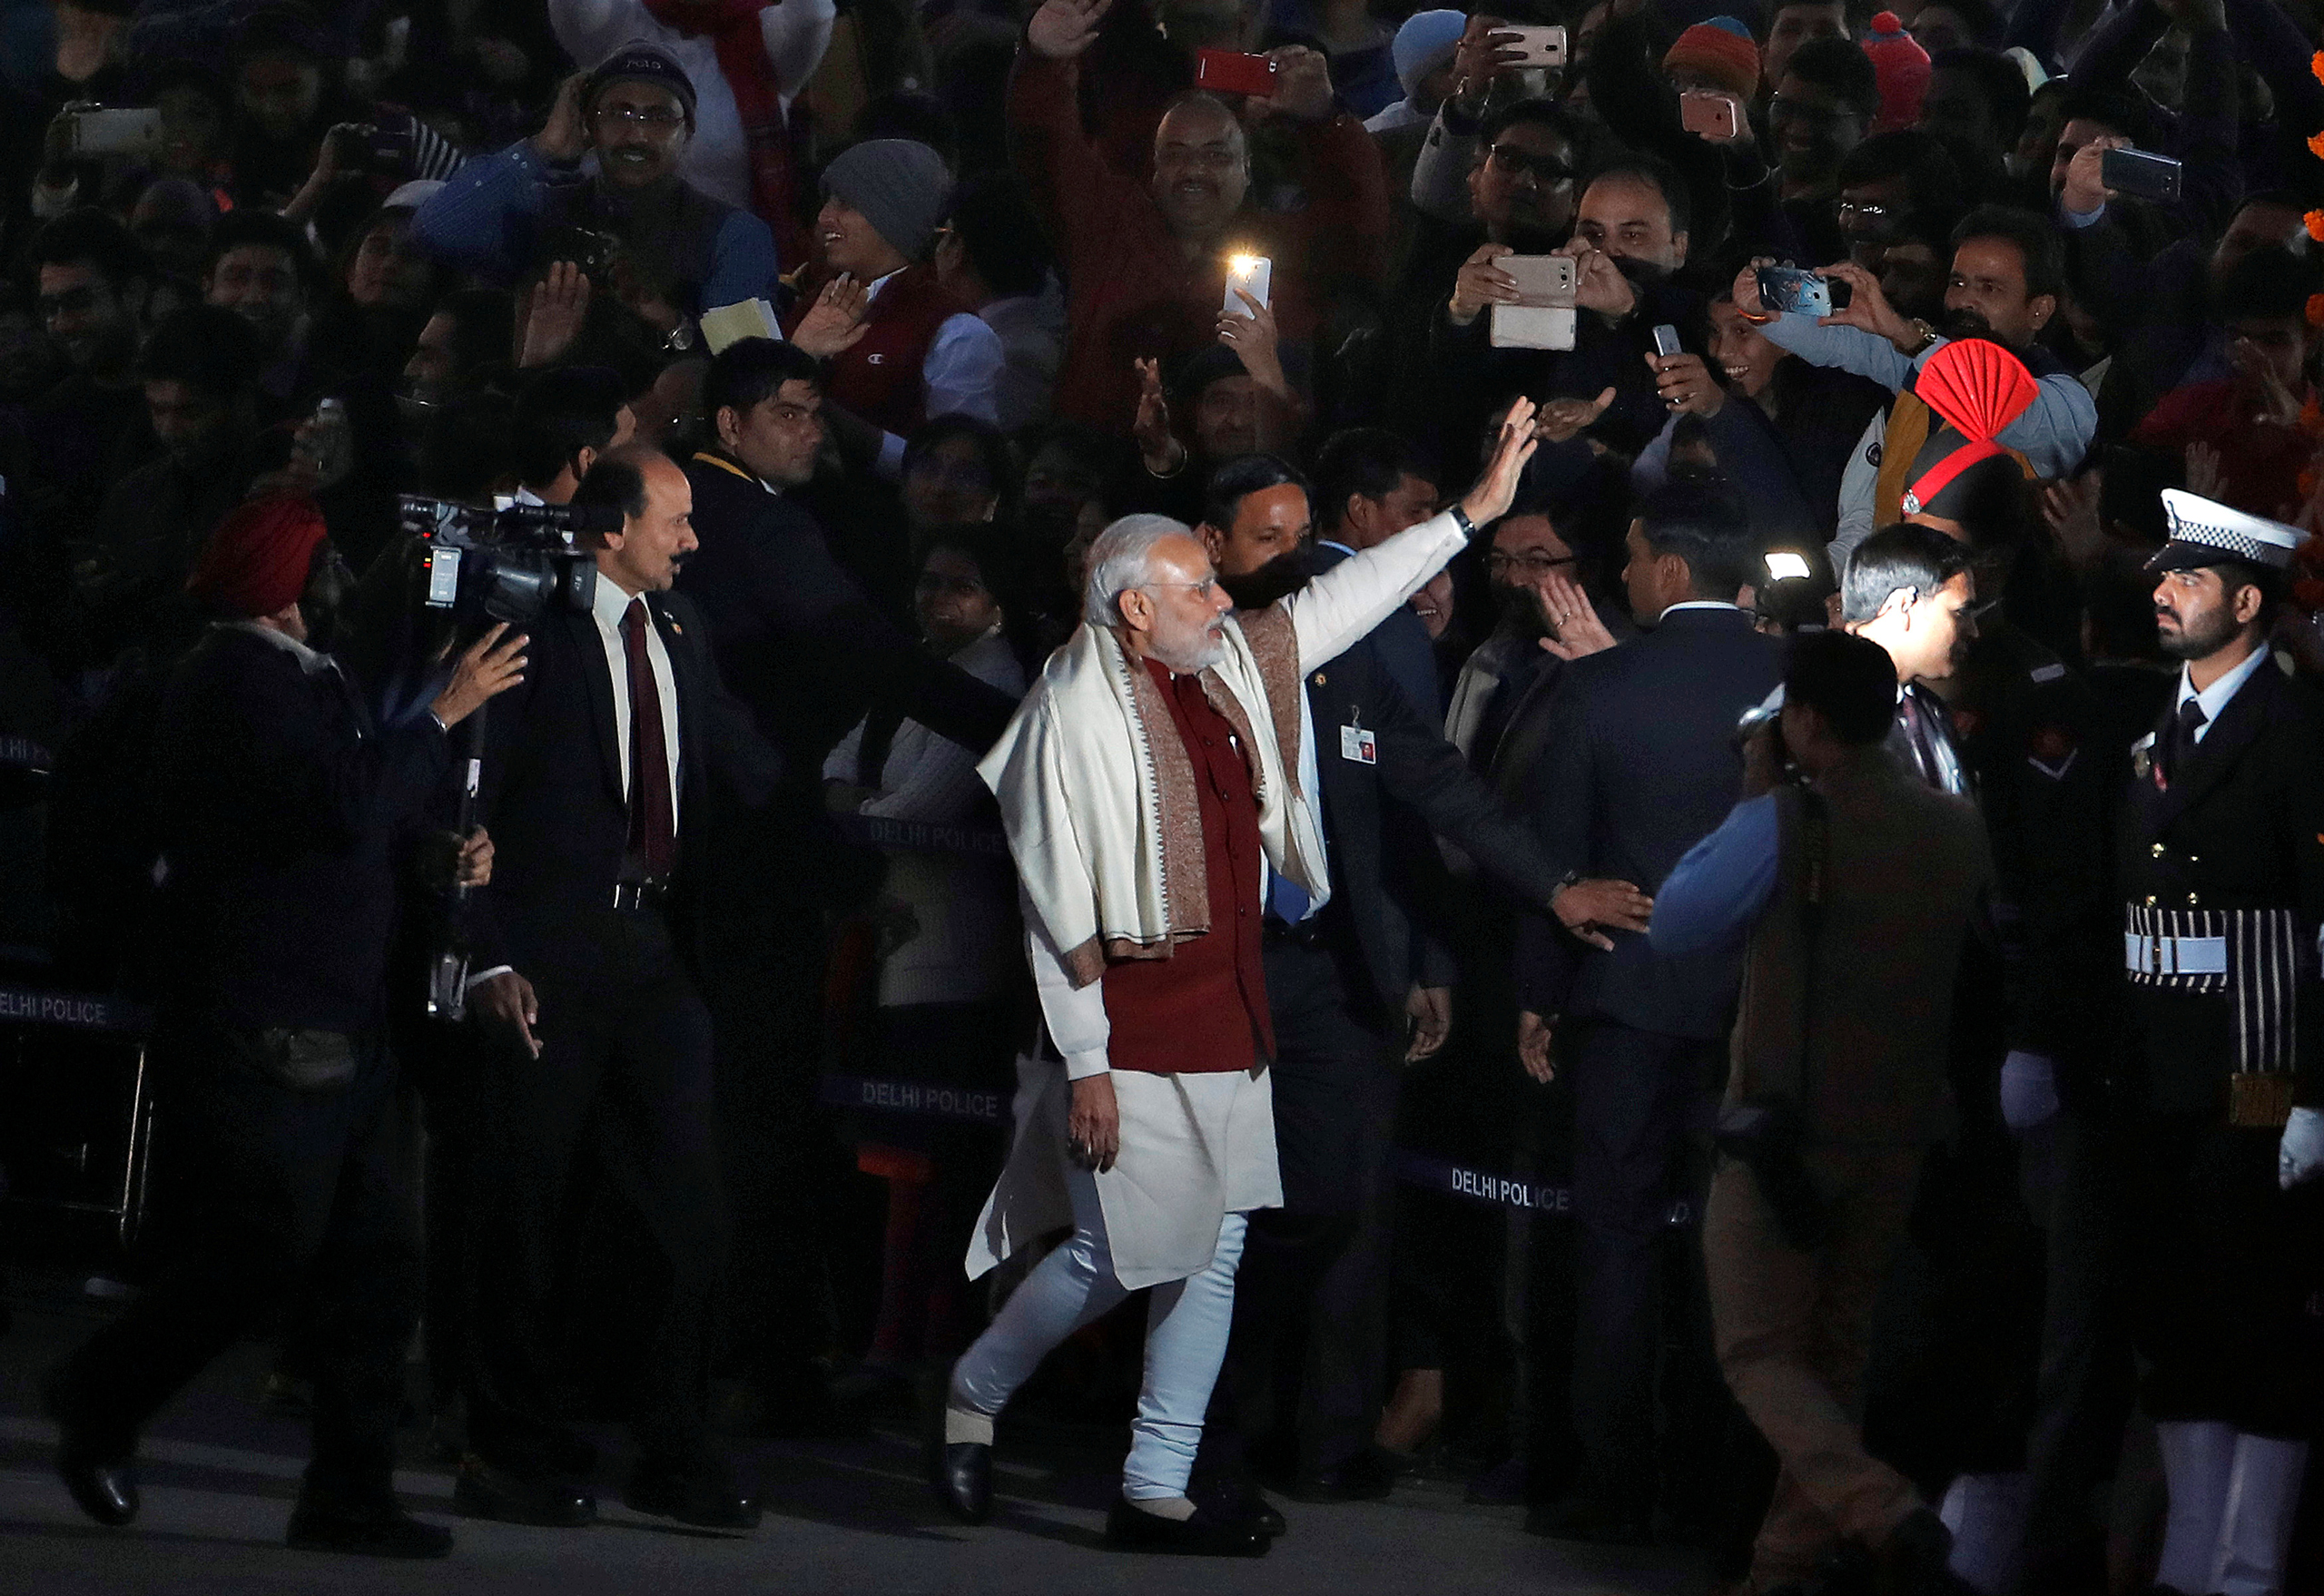 India's Prime Minister Narendra Modi waves as he leaves the Beating the Retreat ceremony in New Delhi on Jan. 29, 2017.